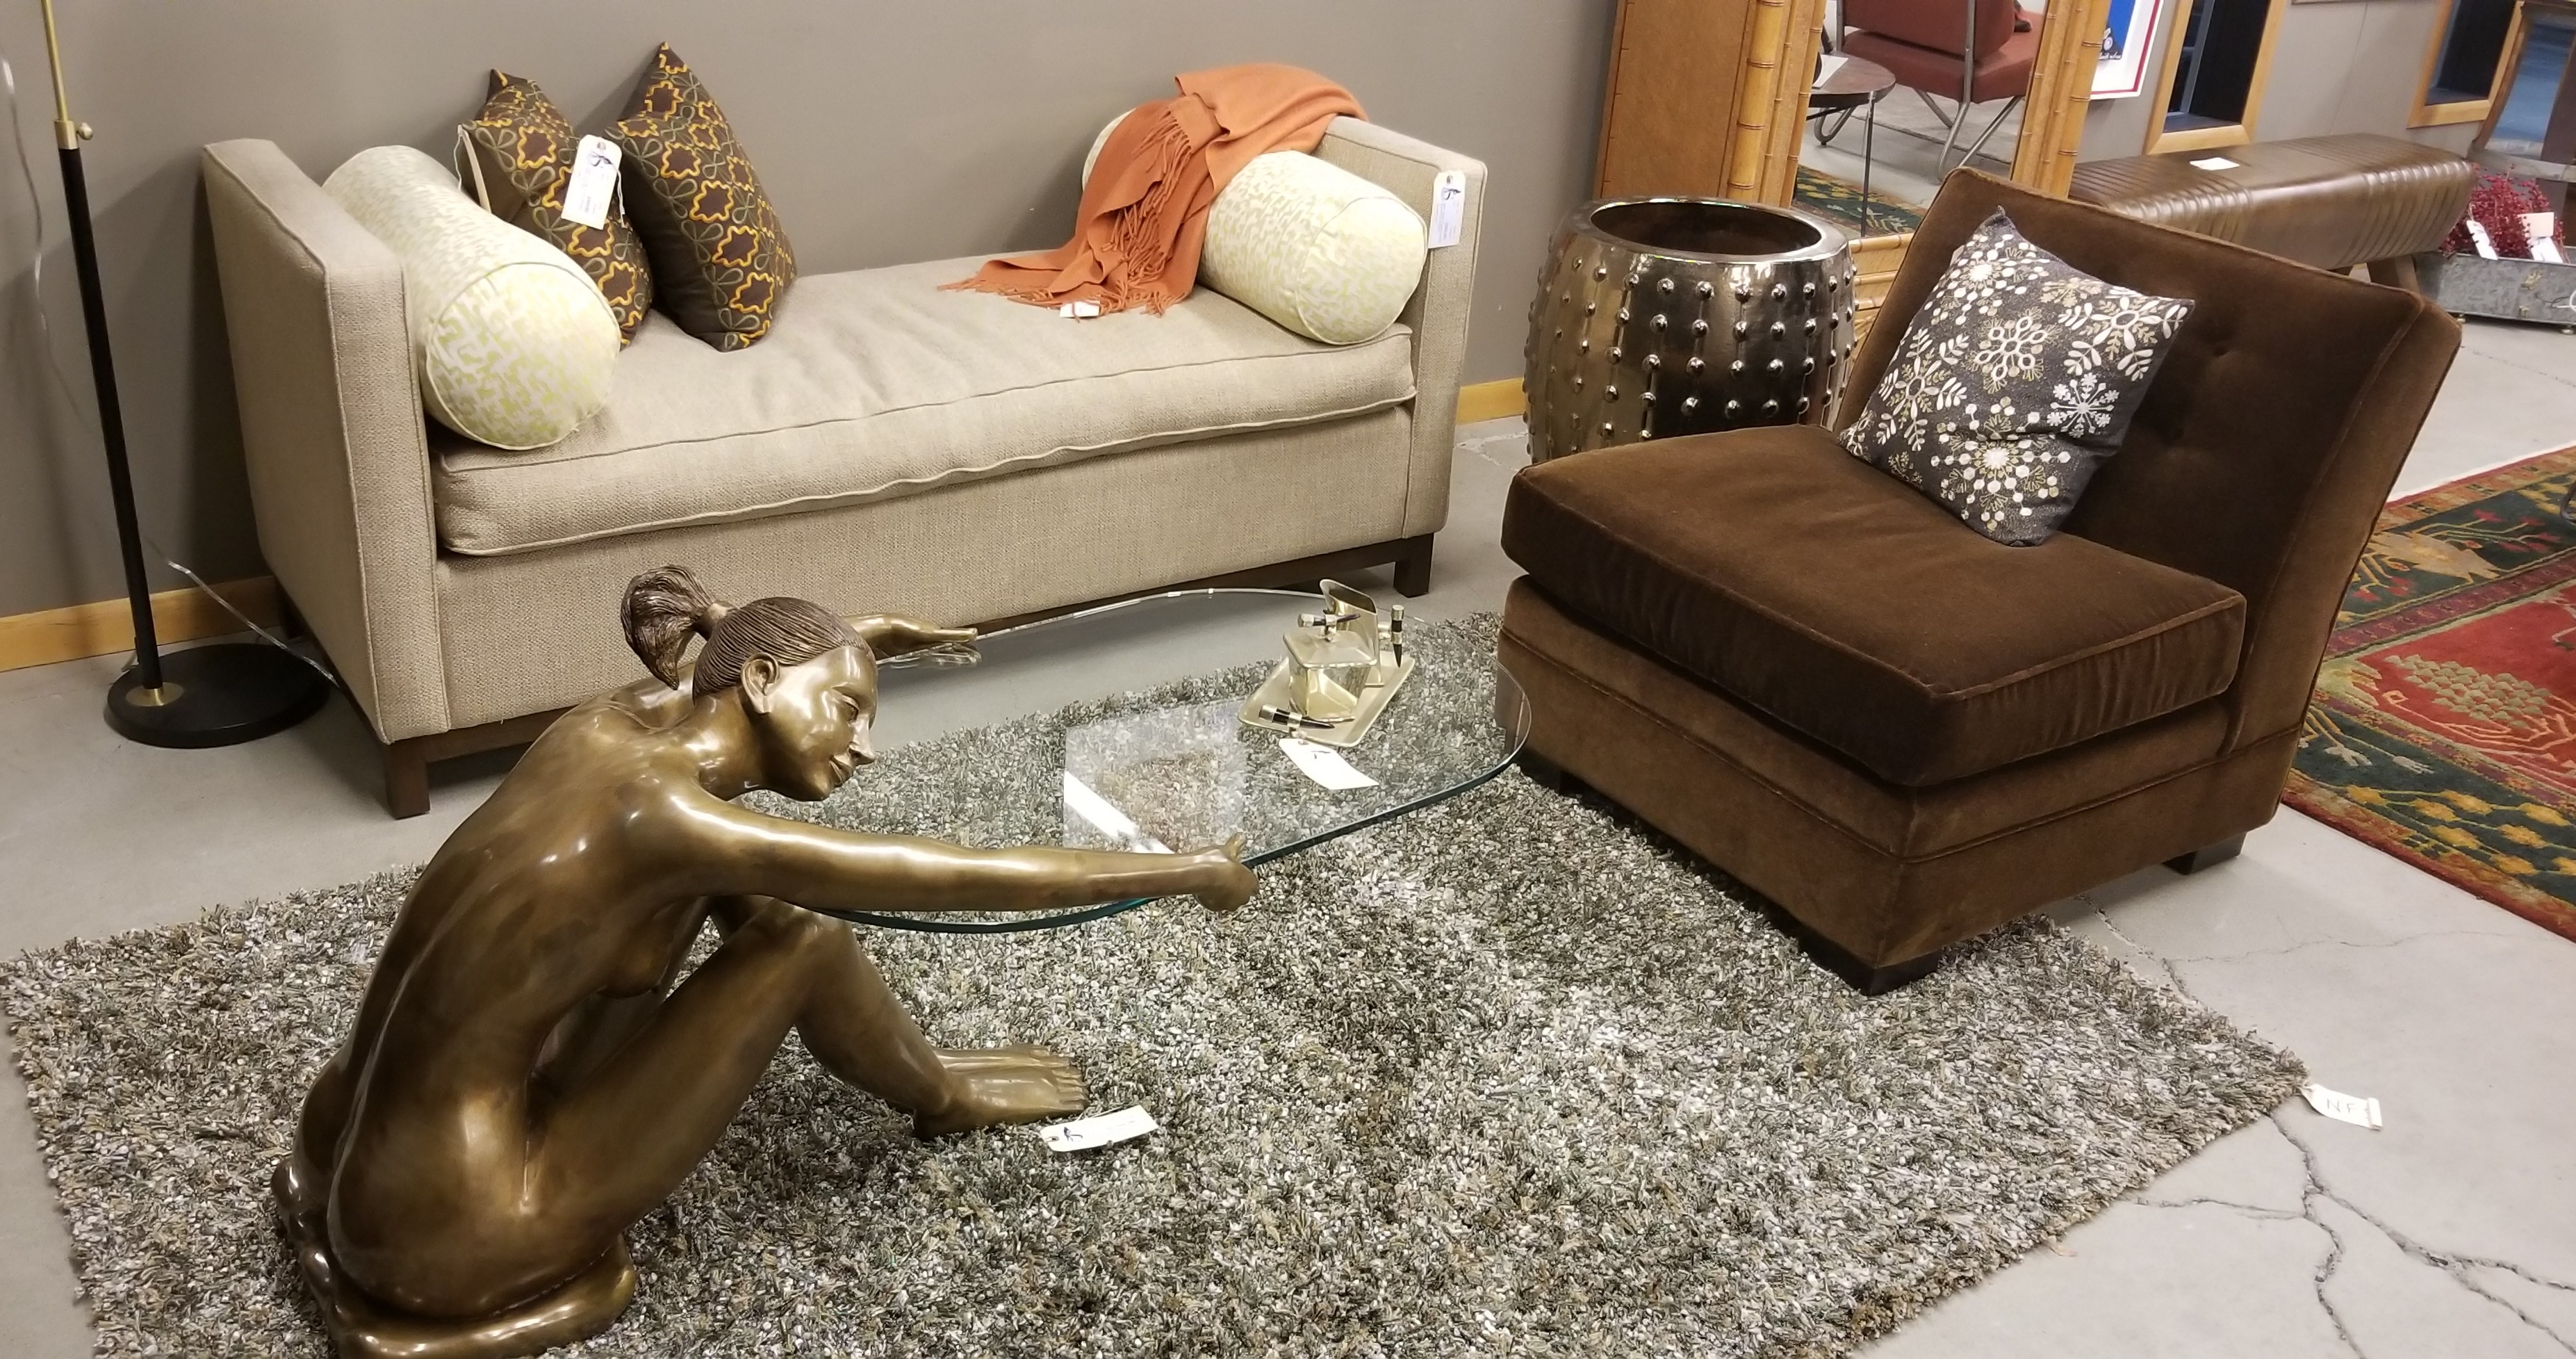 high end furniture consignment portland oregon blogs workanyware rh blogs workanyware co uk